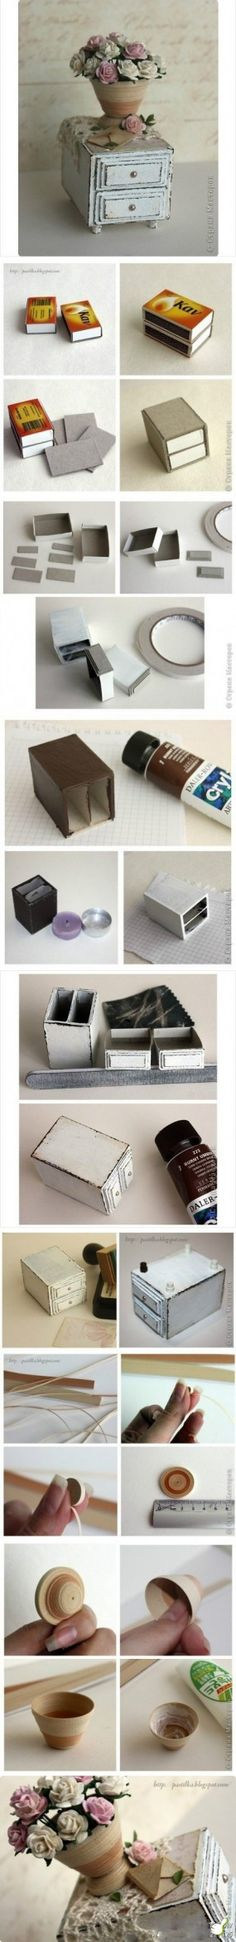 make a cute mini side table out of matchboxes! Dollhouse tutorial, ideas for dollhouse furniture, DIY dollhouse furniture Miniature Furniture, Doll Furniture, Furniture Stores, Furniture Outlet, Furniture Ideas, Furniture Online, Handmade Furniture, Diy Dollhouse Furniture Easy, Furniture Design